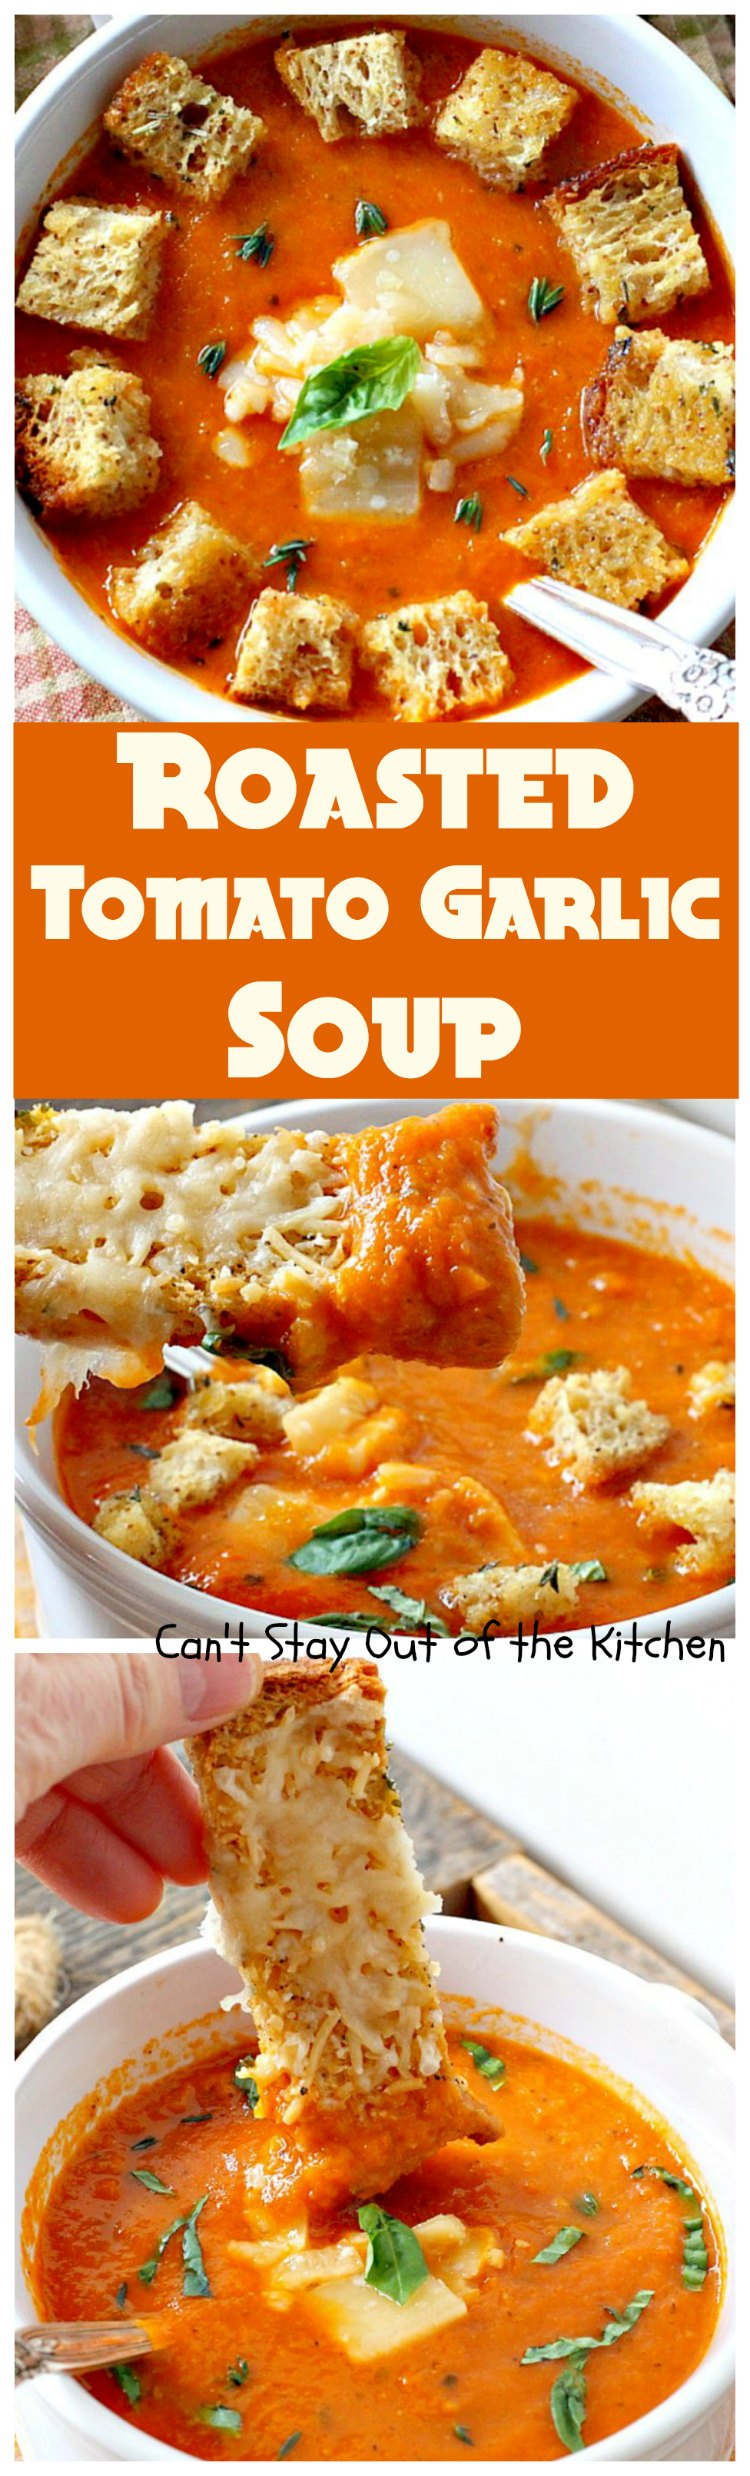 Roasted Tomato Garlic Soup | Can't Stay Out of the Kitchen | this ...